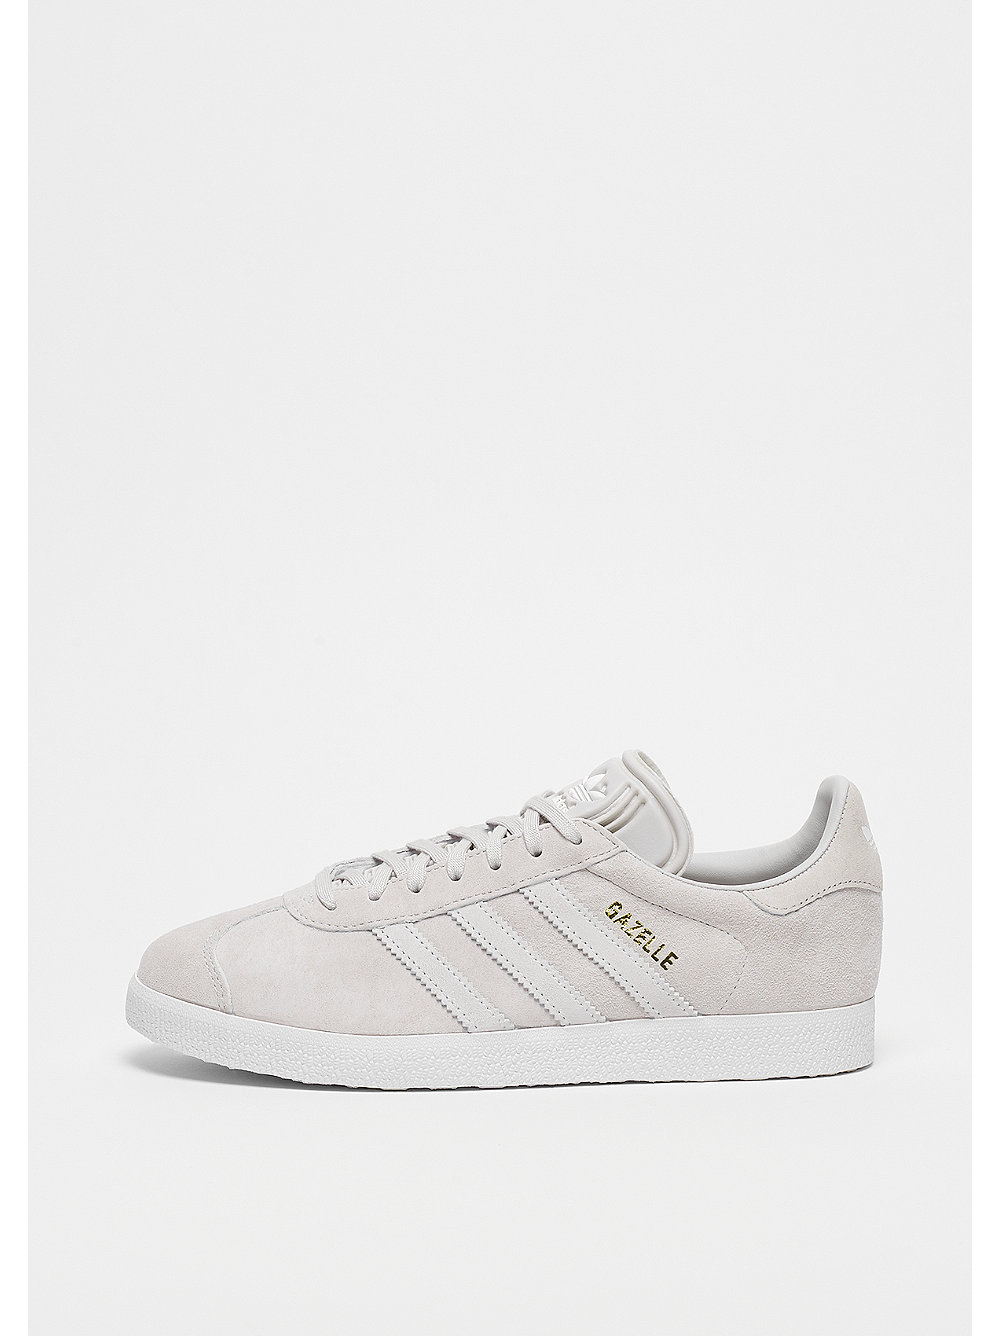 adidas gazelle grey two